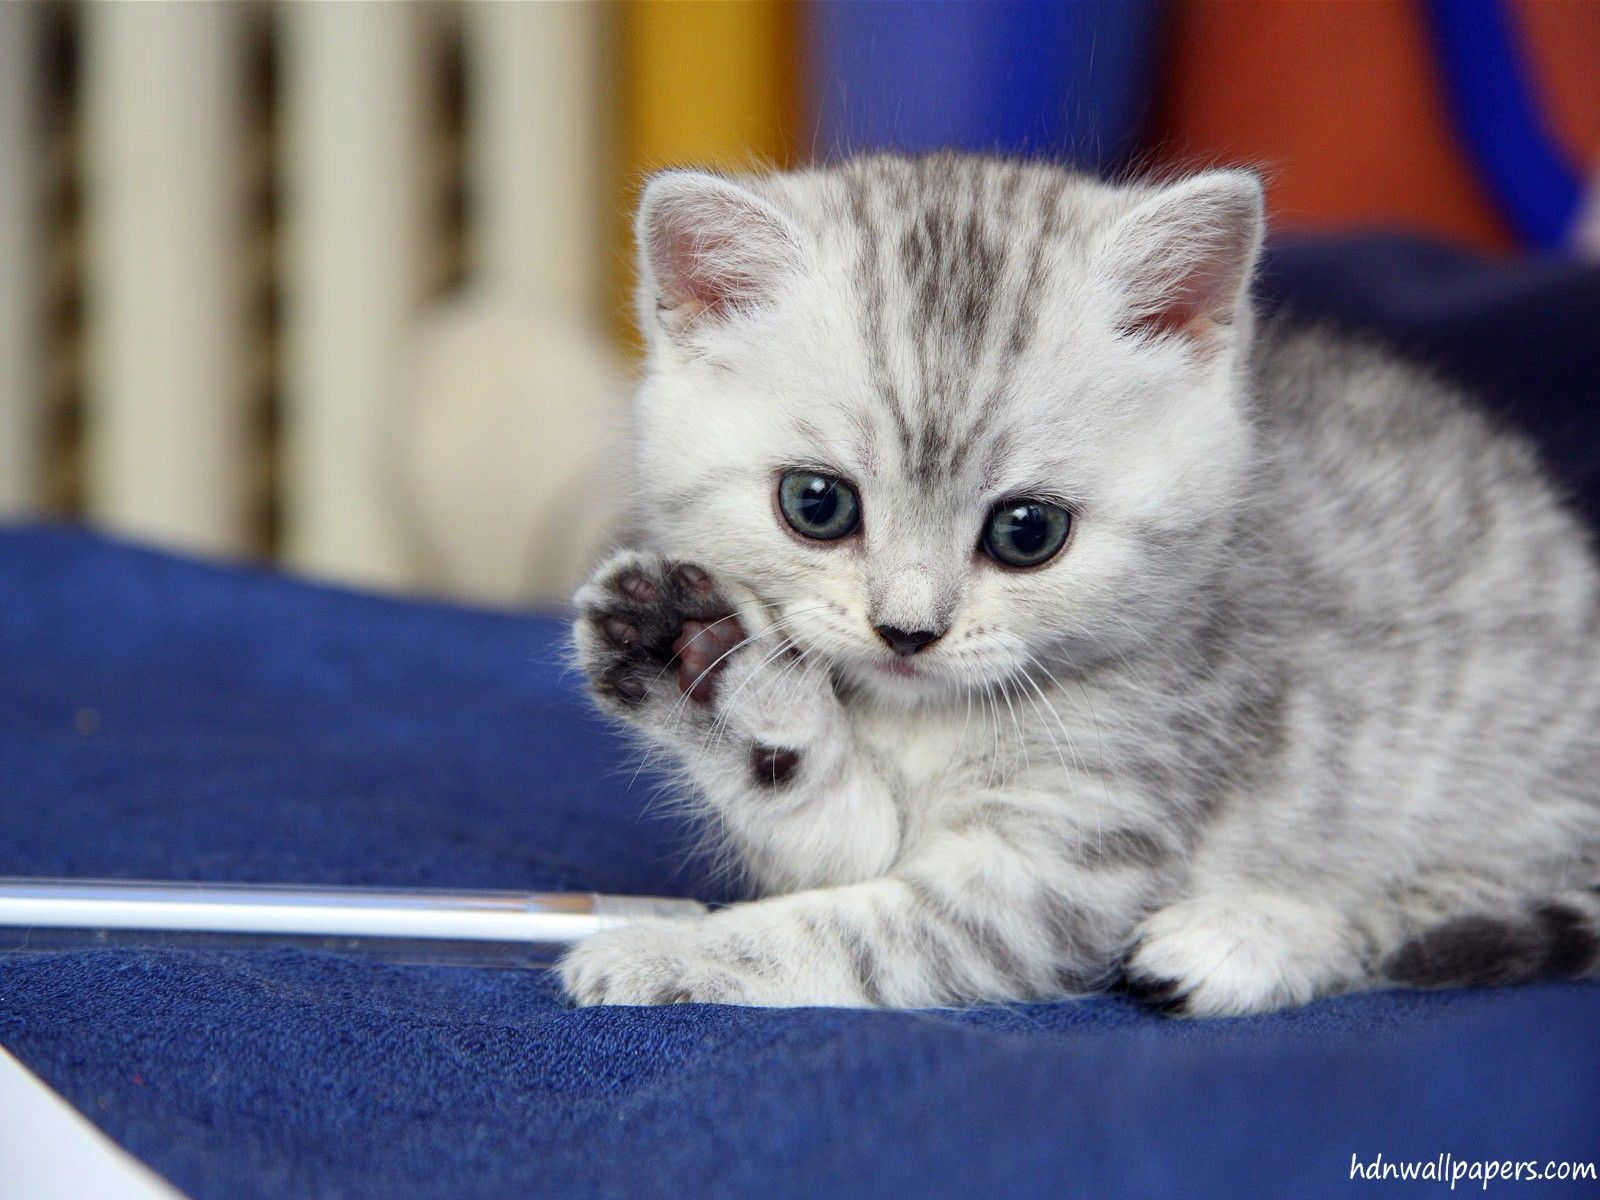 Cute Kitten Wallpaper Free Download 1600x1200